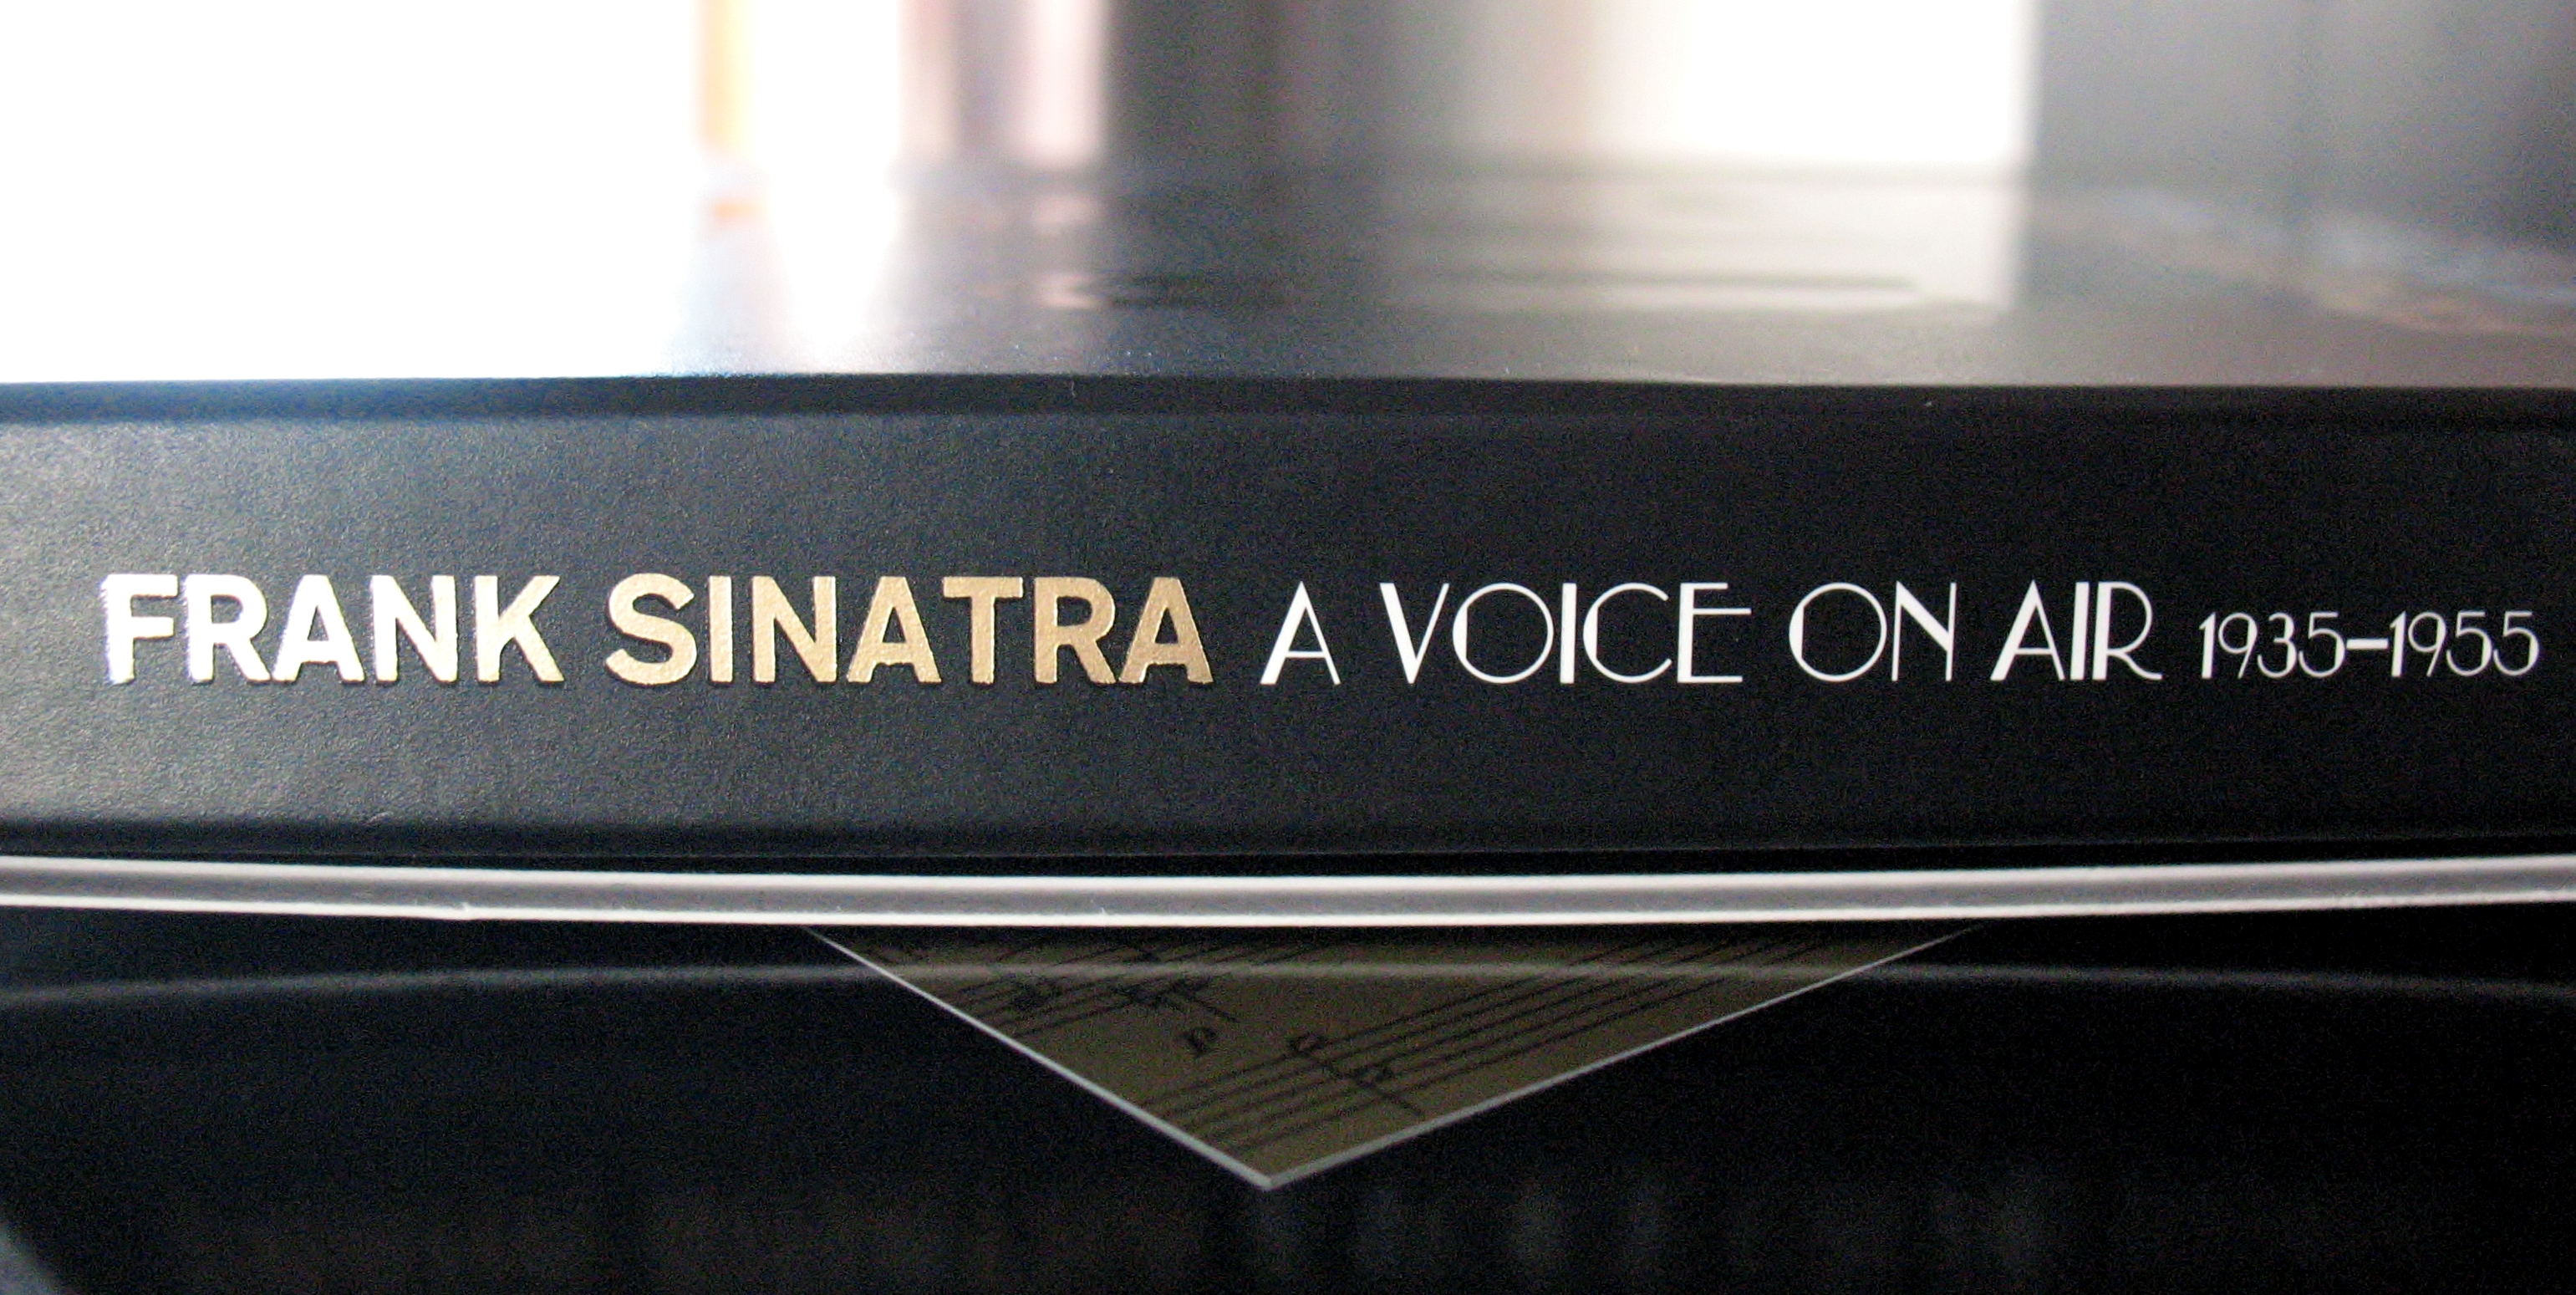 sinatra-a-voice-on-air-box